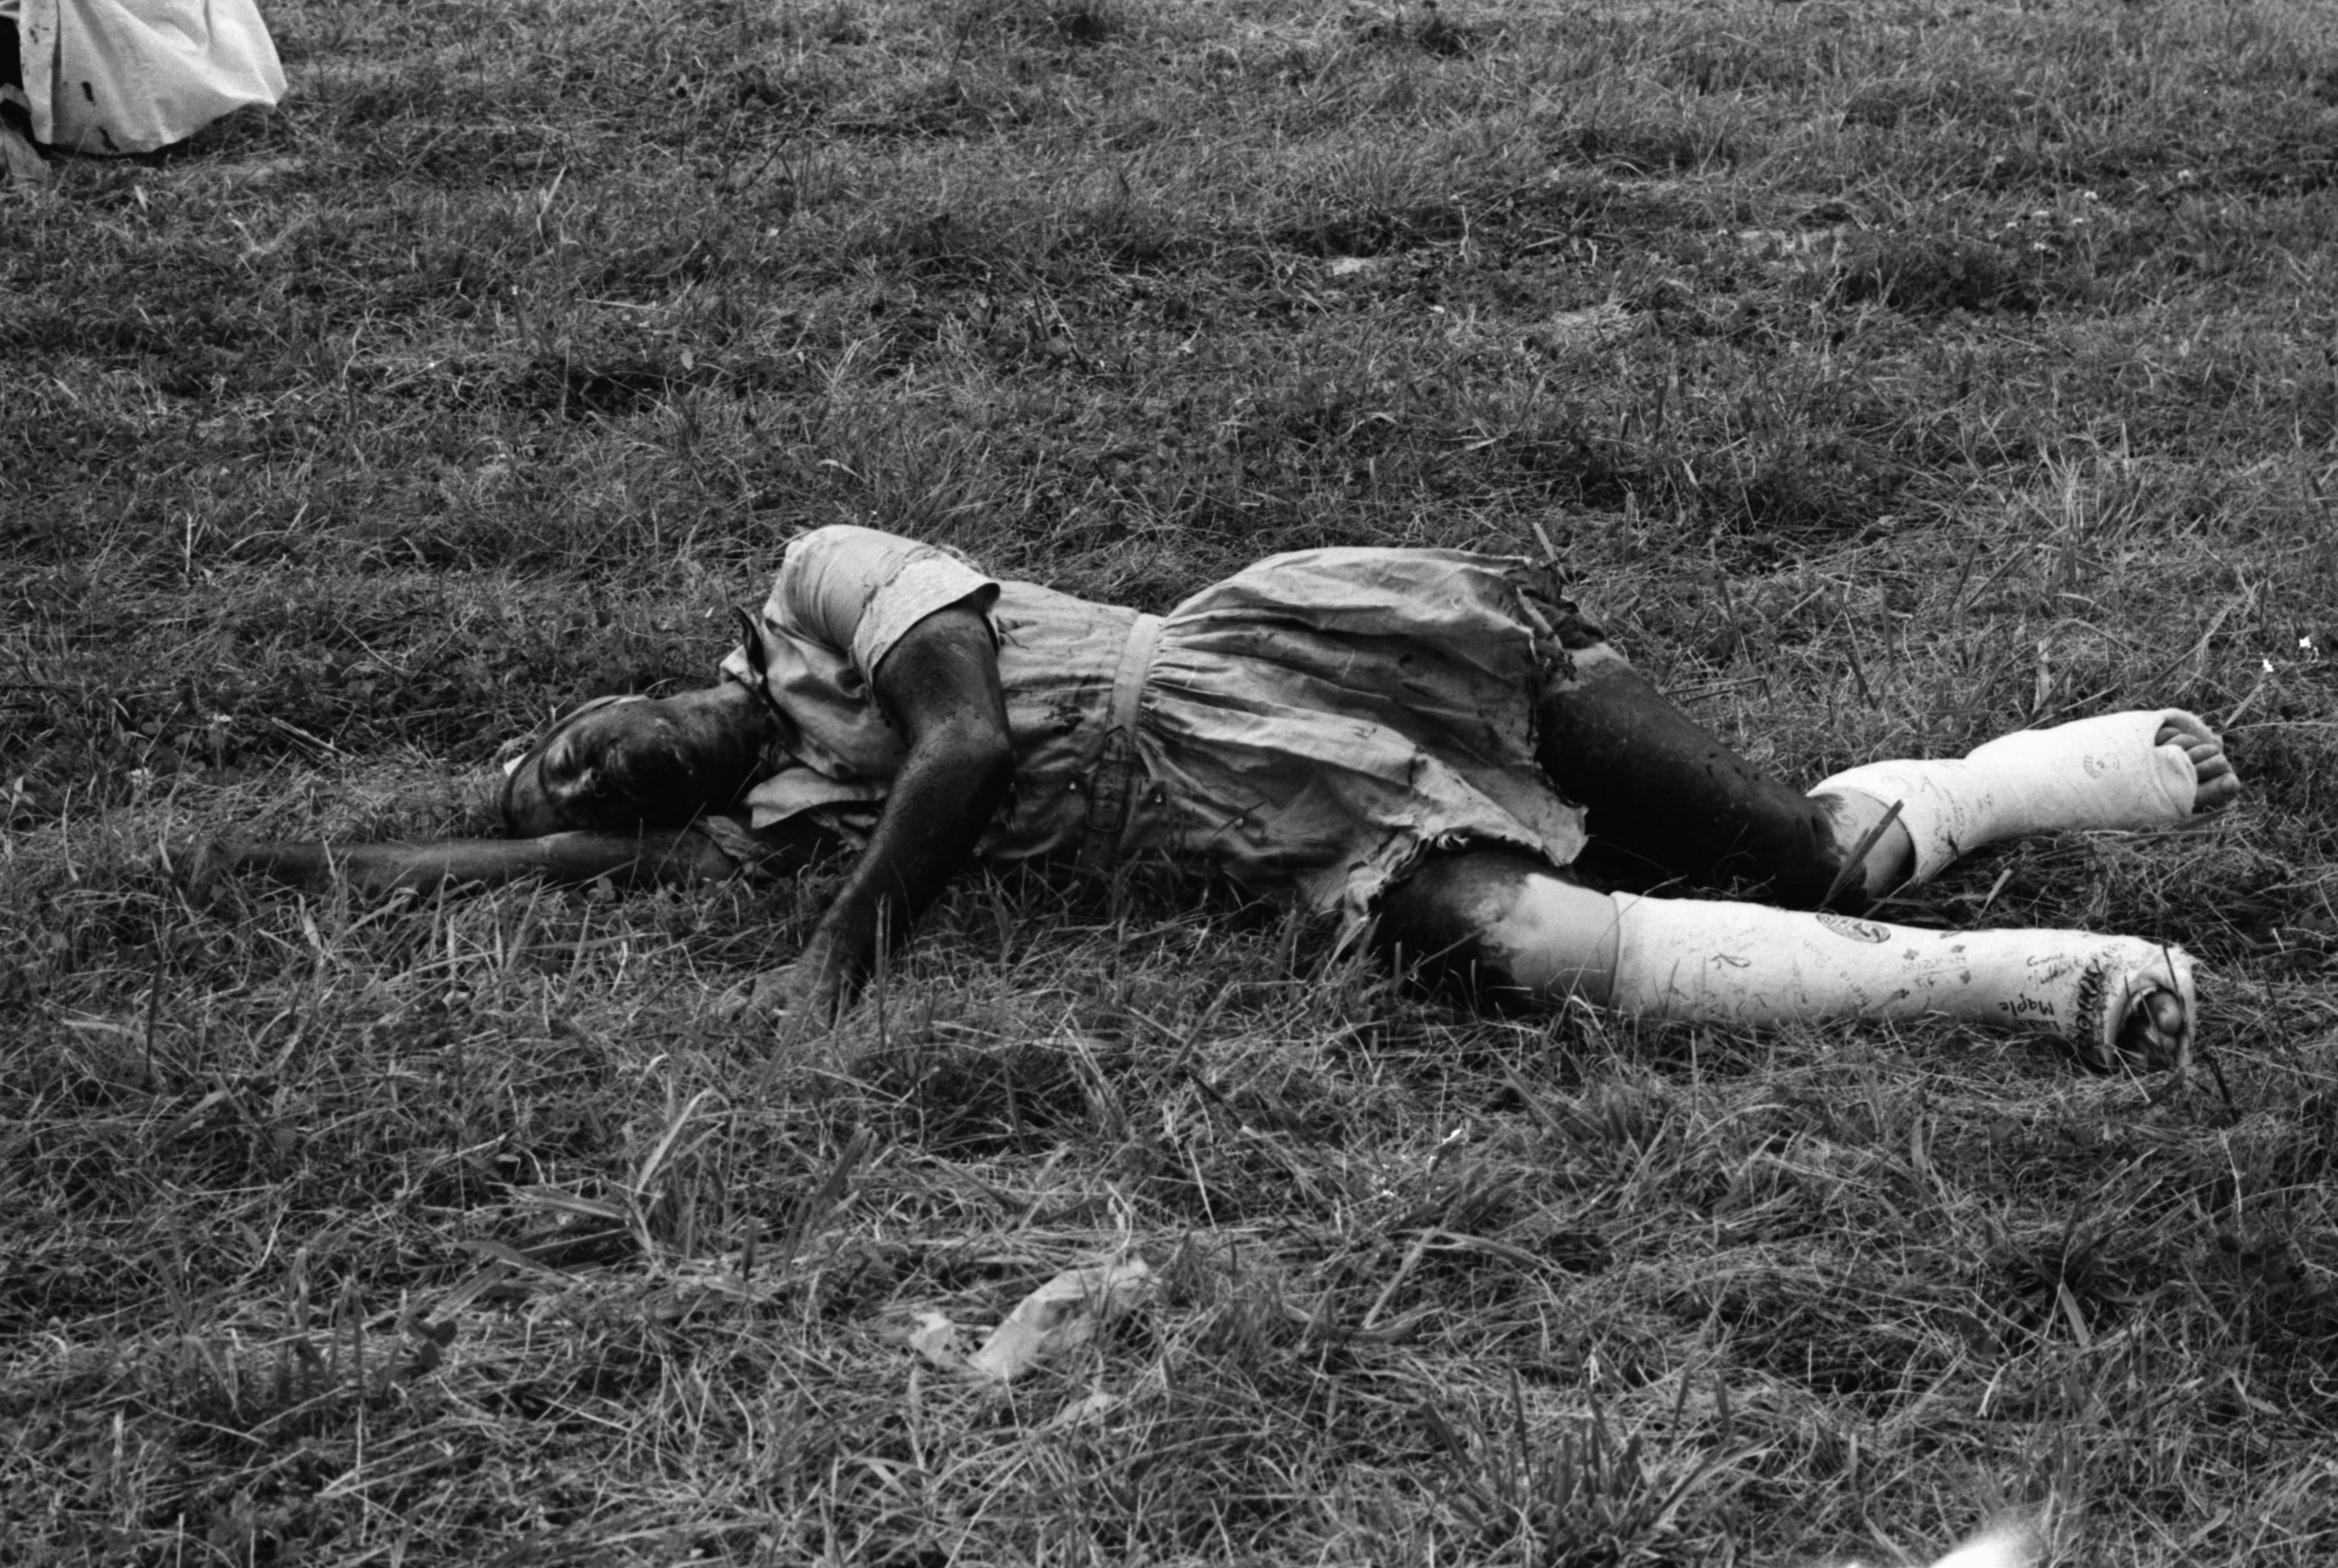 Pioneer High School student Kim Givens, in Civil Defense Mock Disaster near Huron High School, September 1968 image